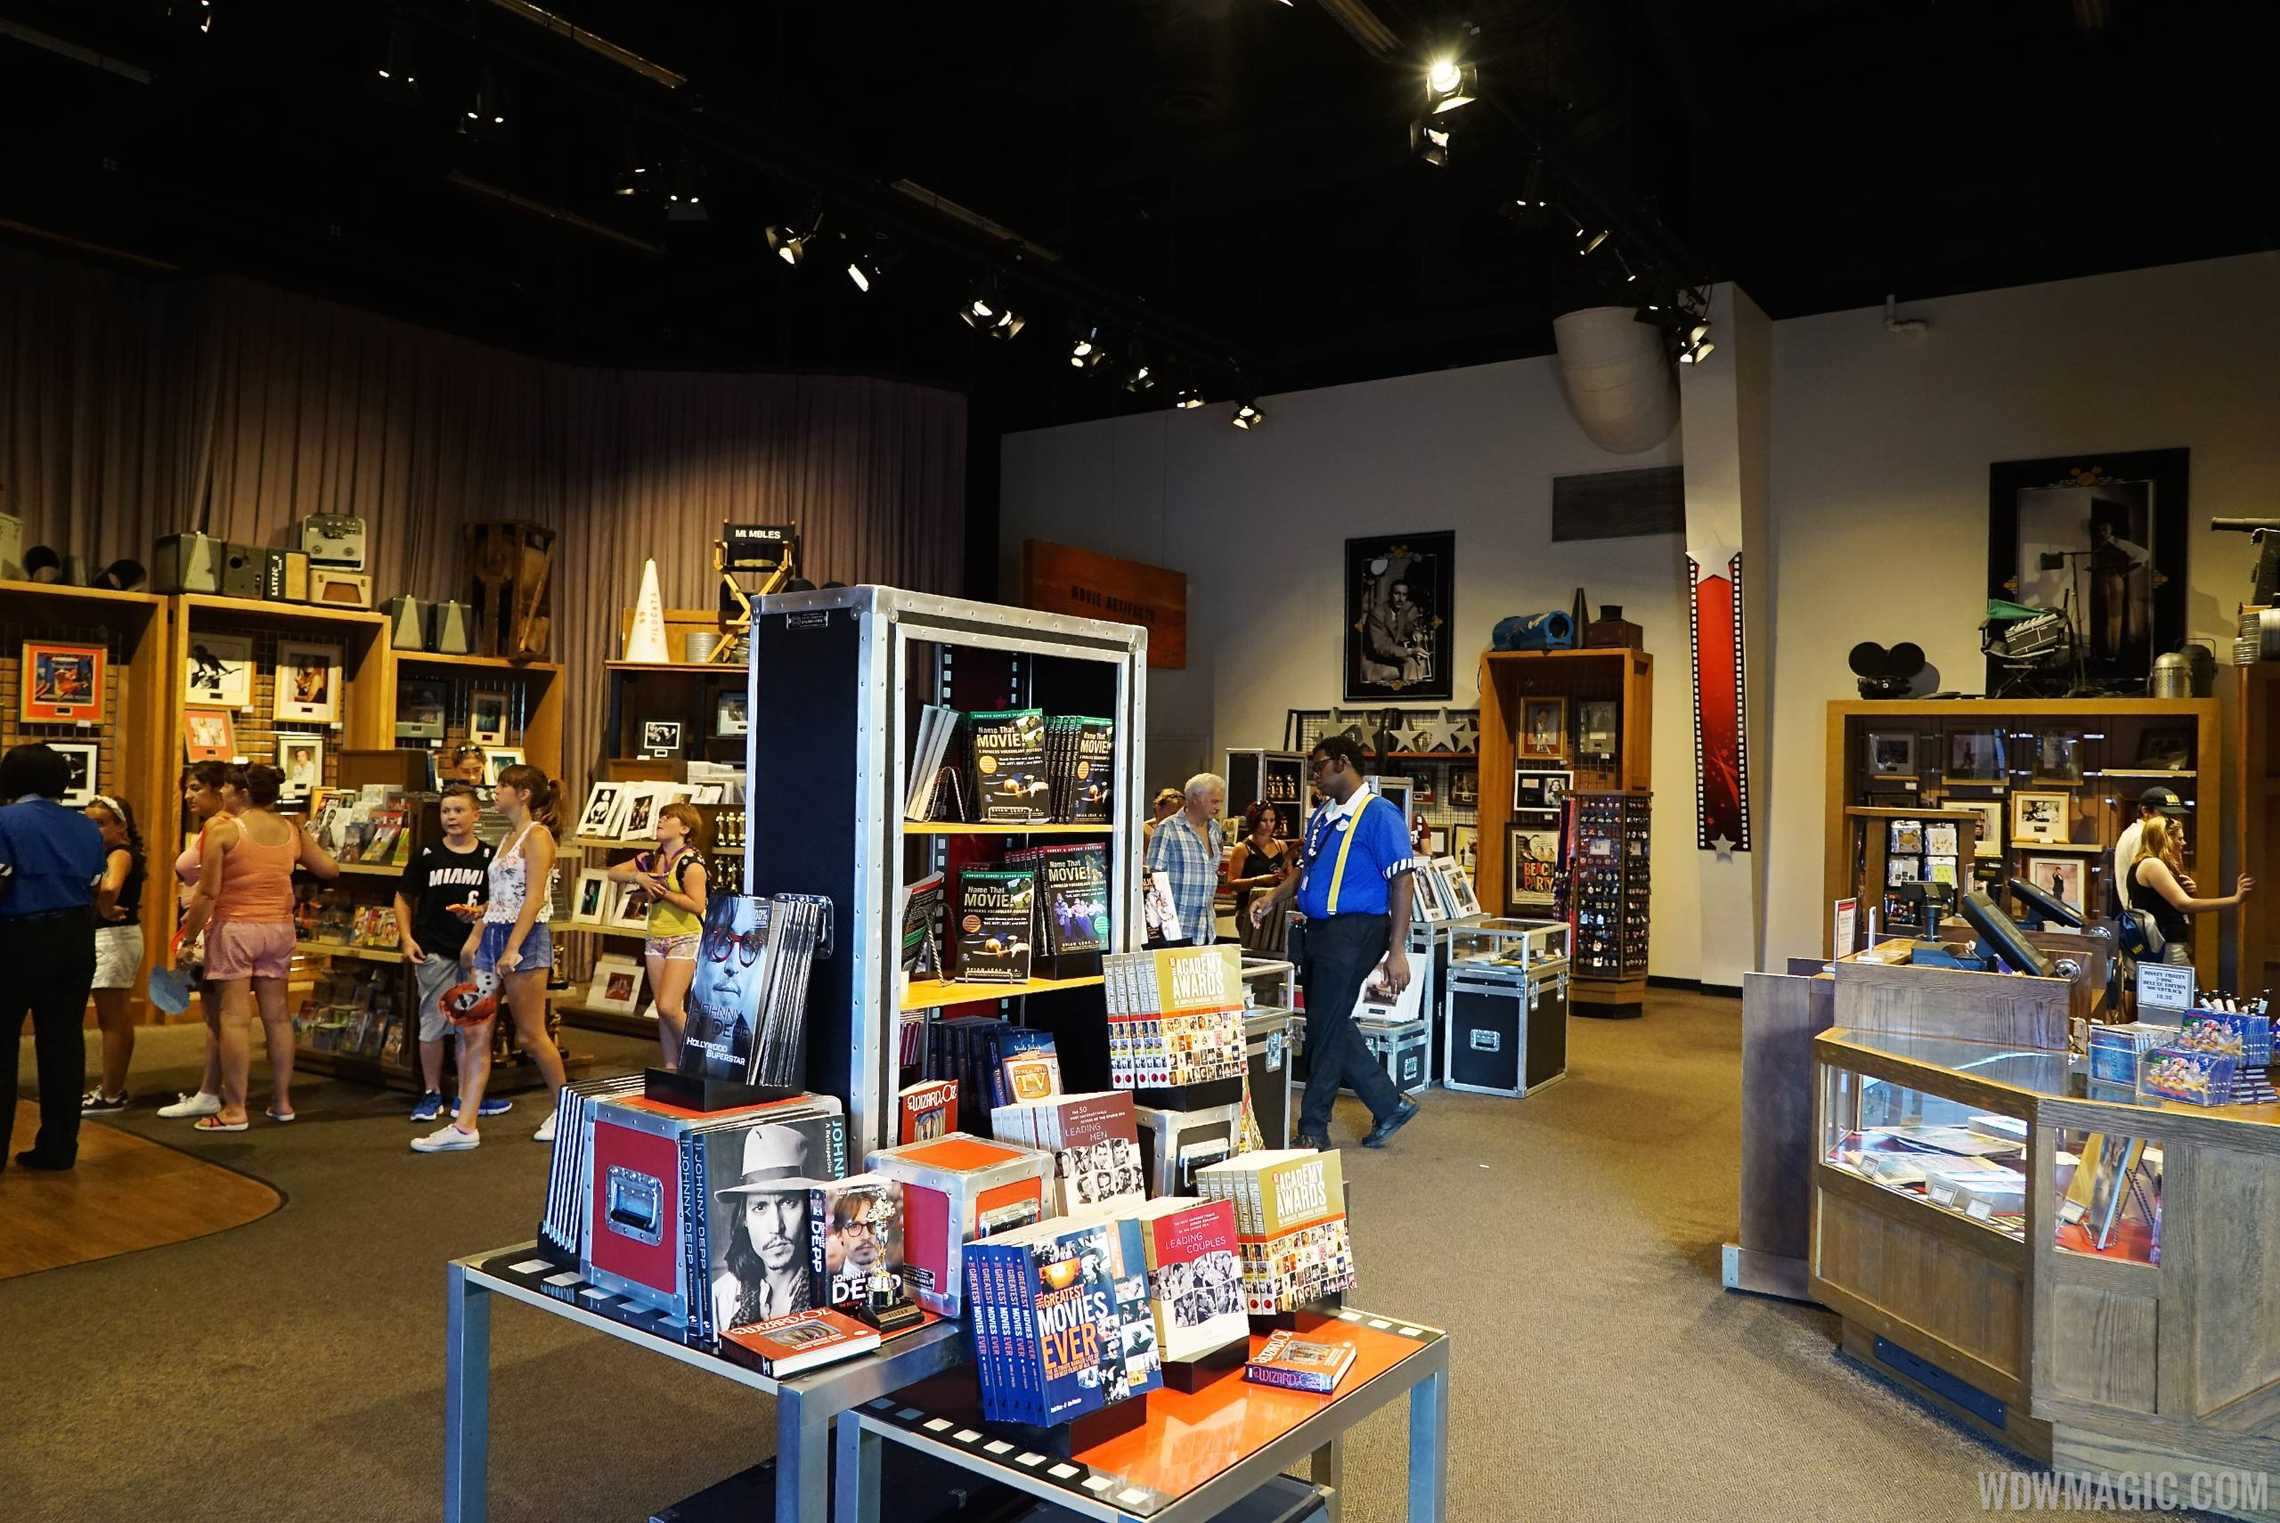 American Film Institute exhibit - Inside the Showcase Shop